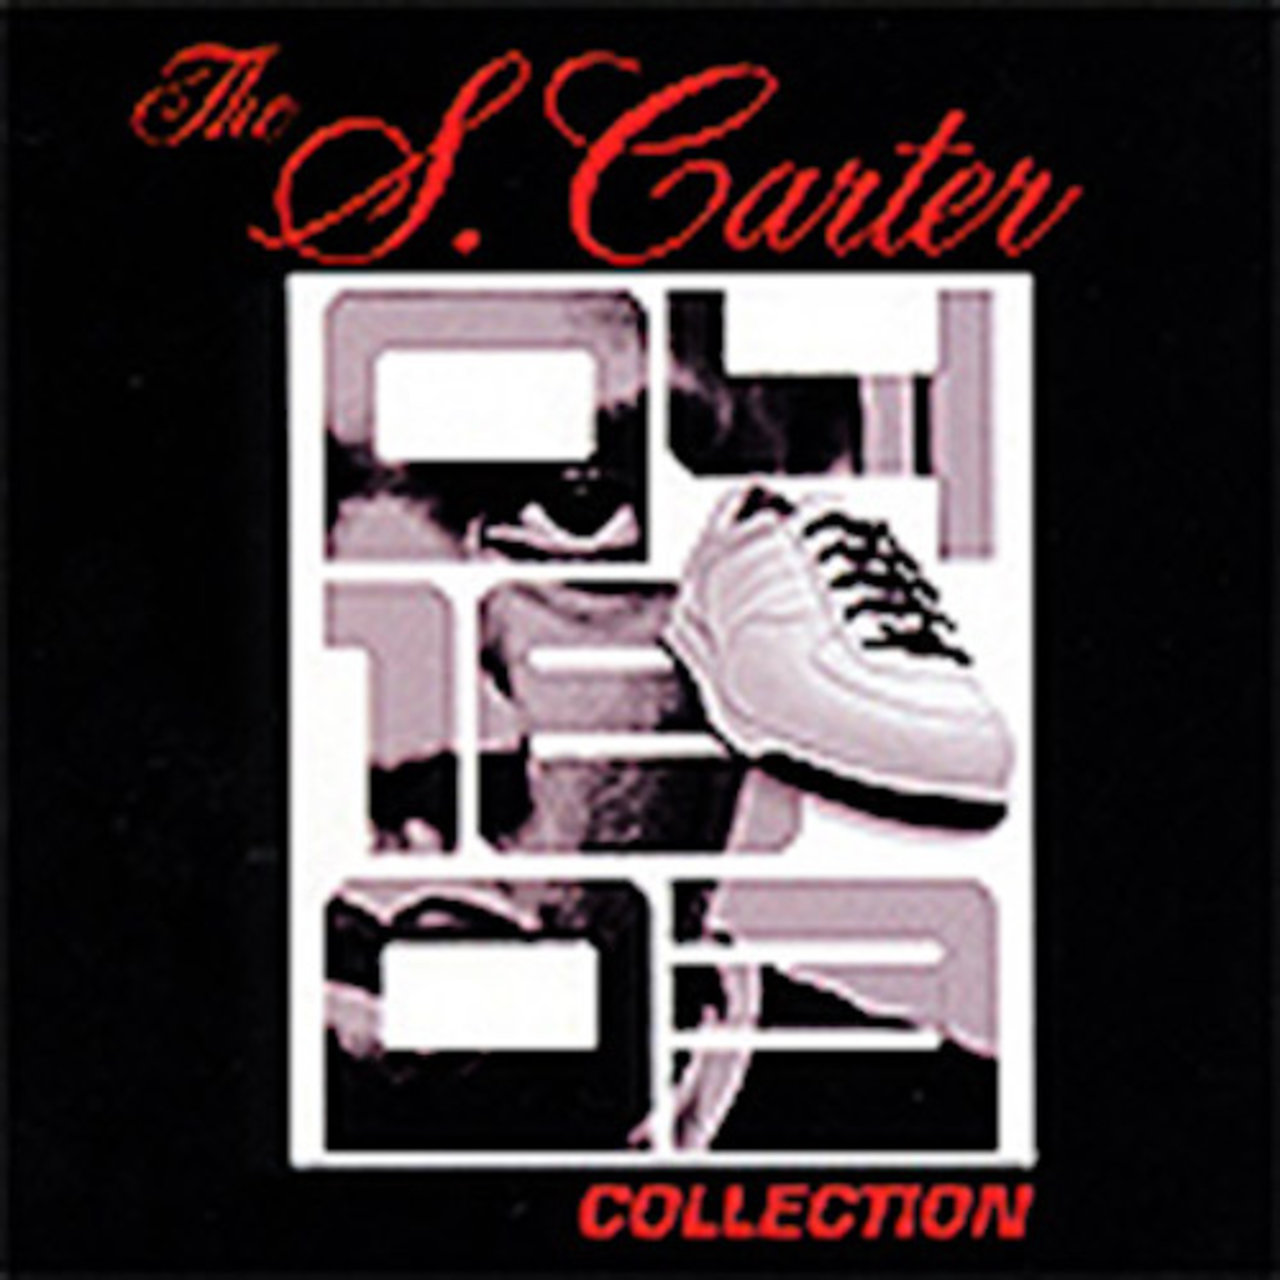 Tidal listen to the blueprint 3 on tidal s carter collection 15th anniversary malvernweather Images